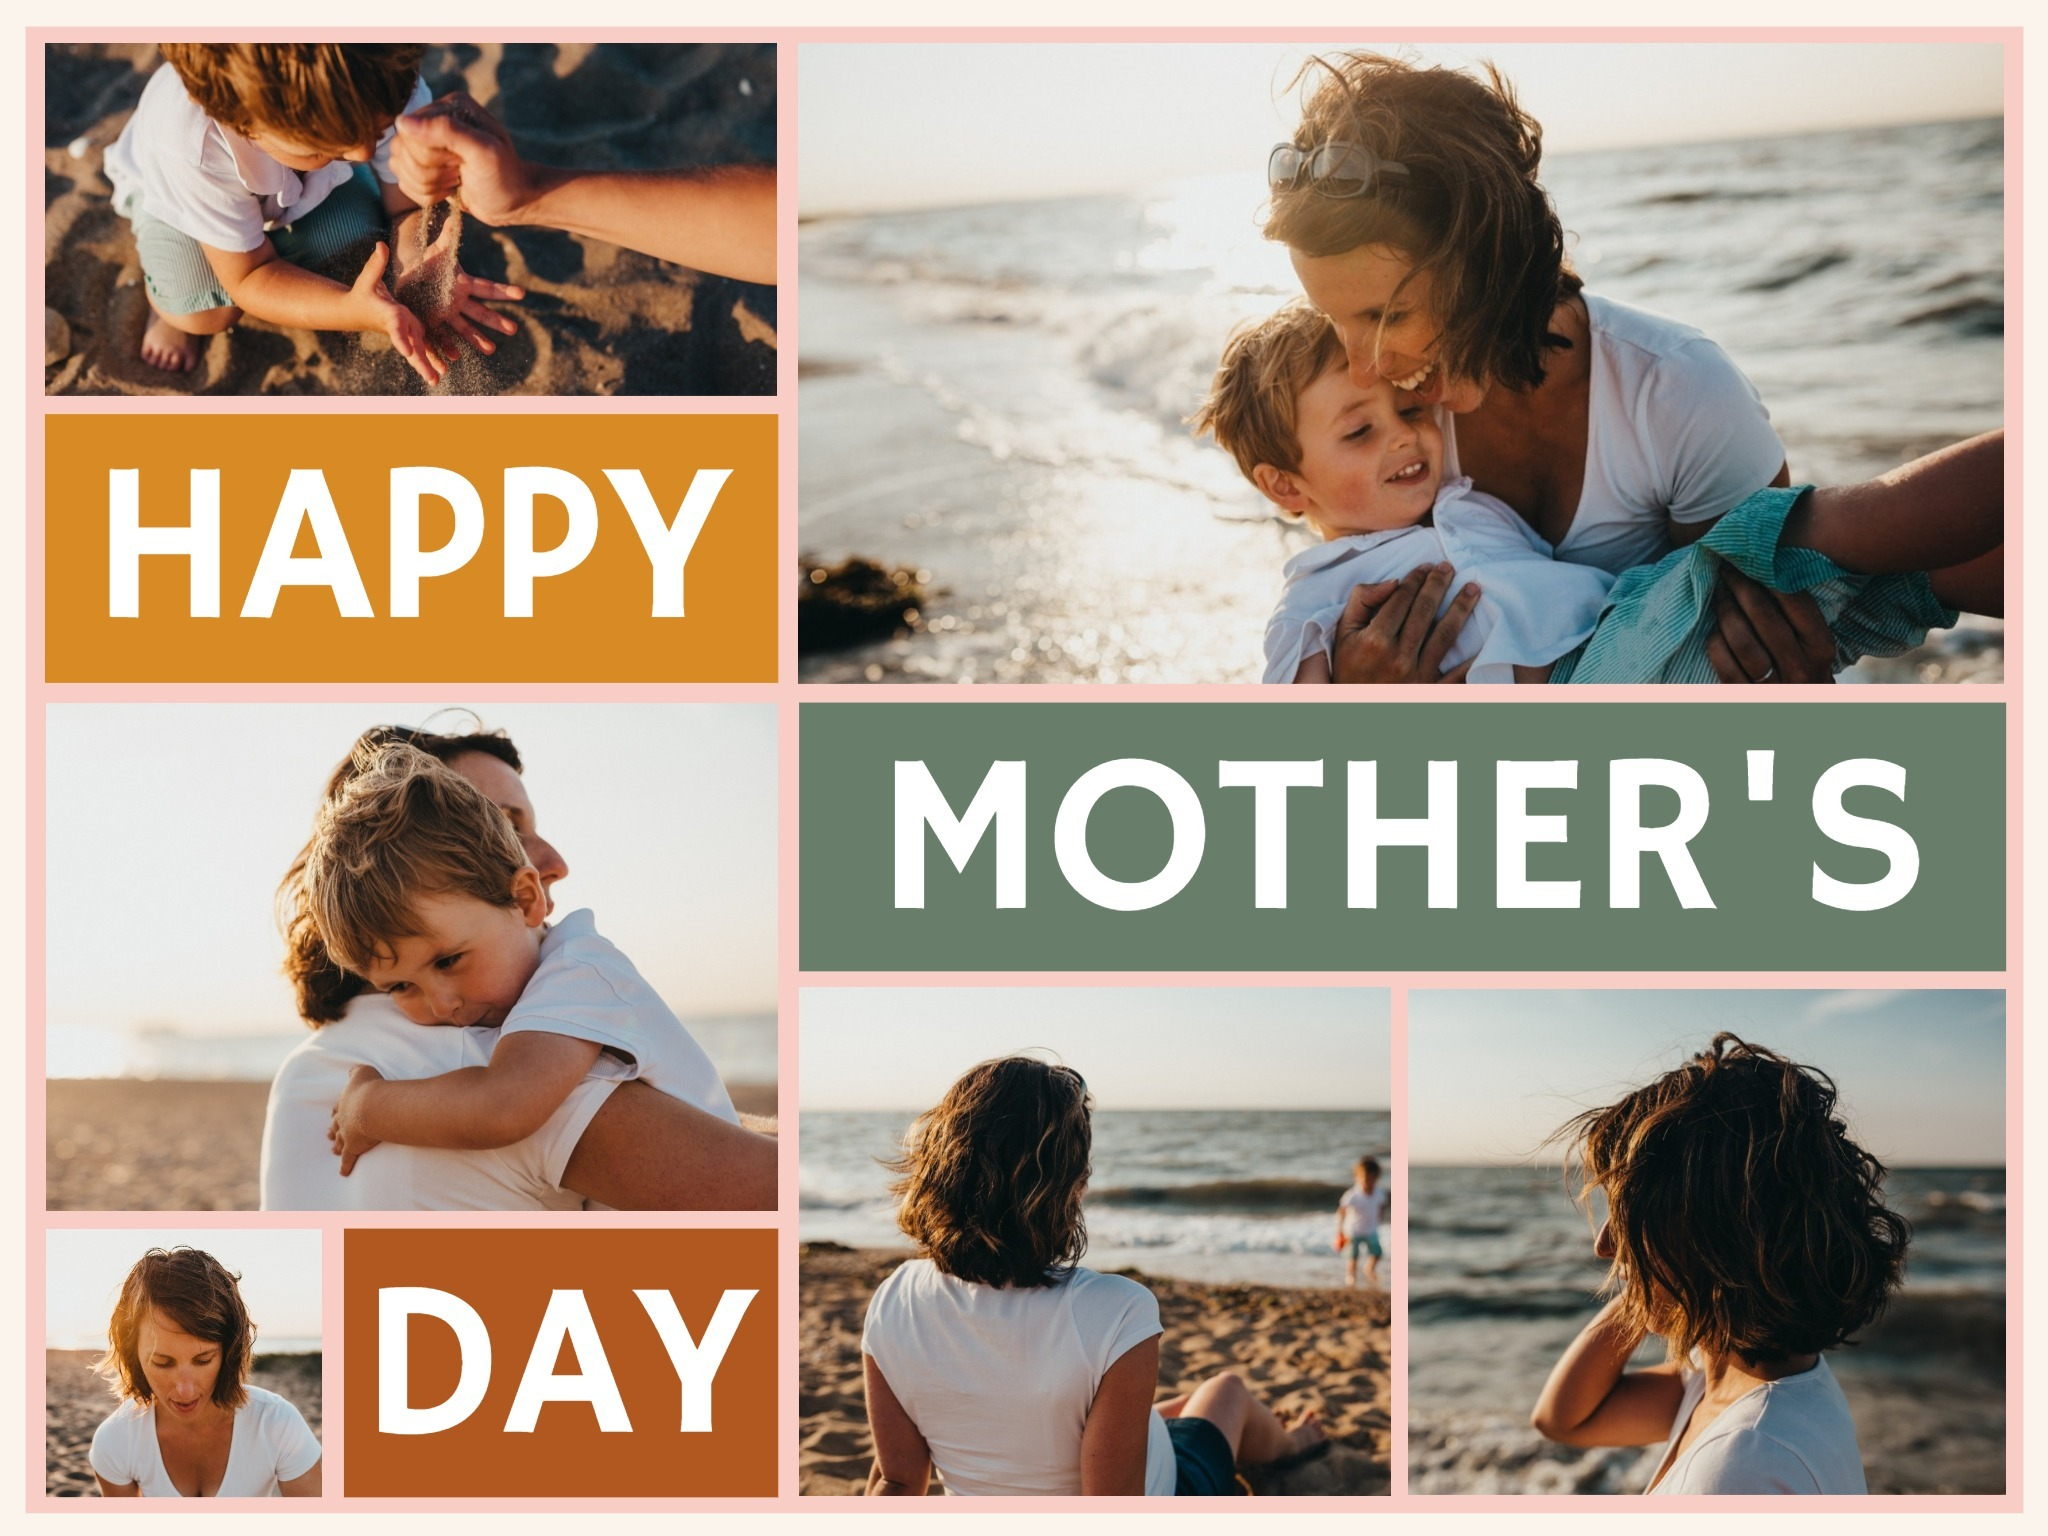 mothersday3_wl_20190415